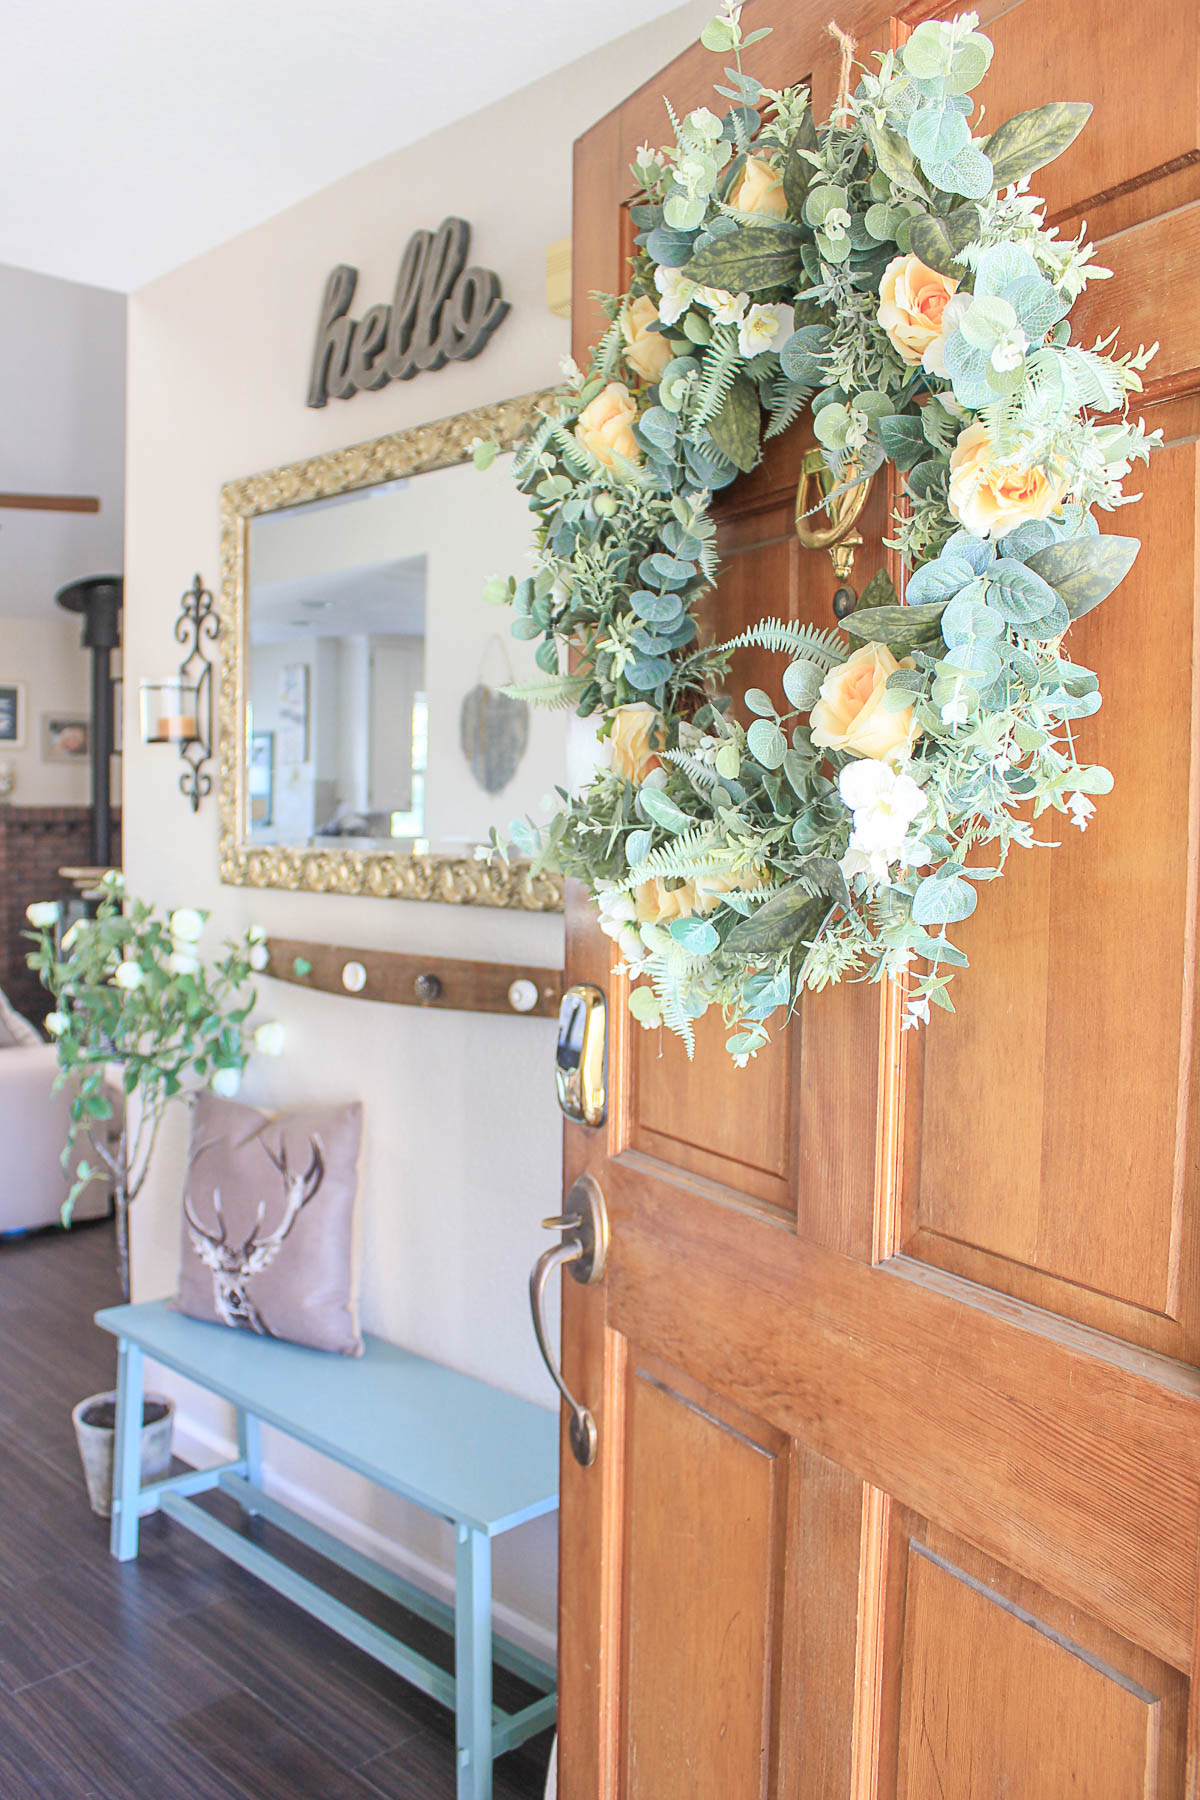 French Country Home Decor Ideas - Entry Way